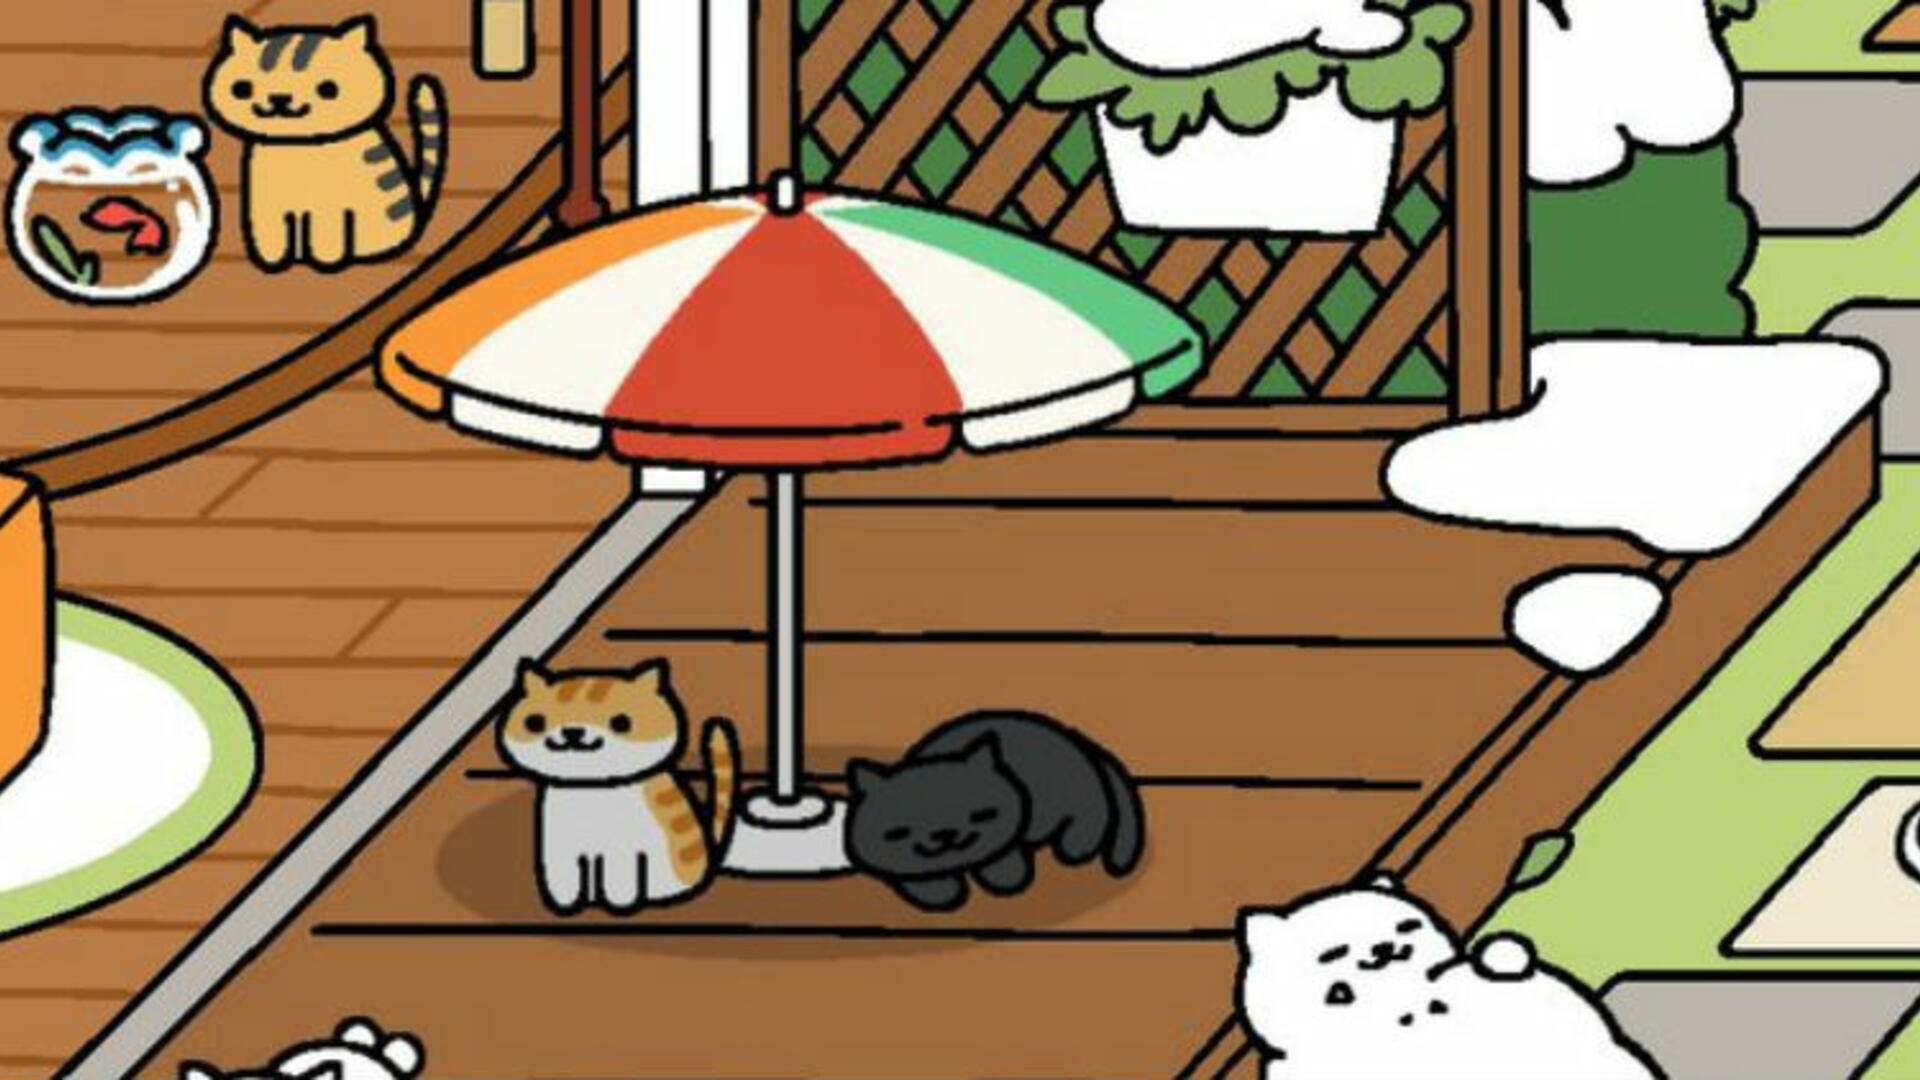 Neko Atsume: How to Get More Cats, How to Understand Power Levels, and Other Hints and Tips